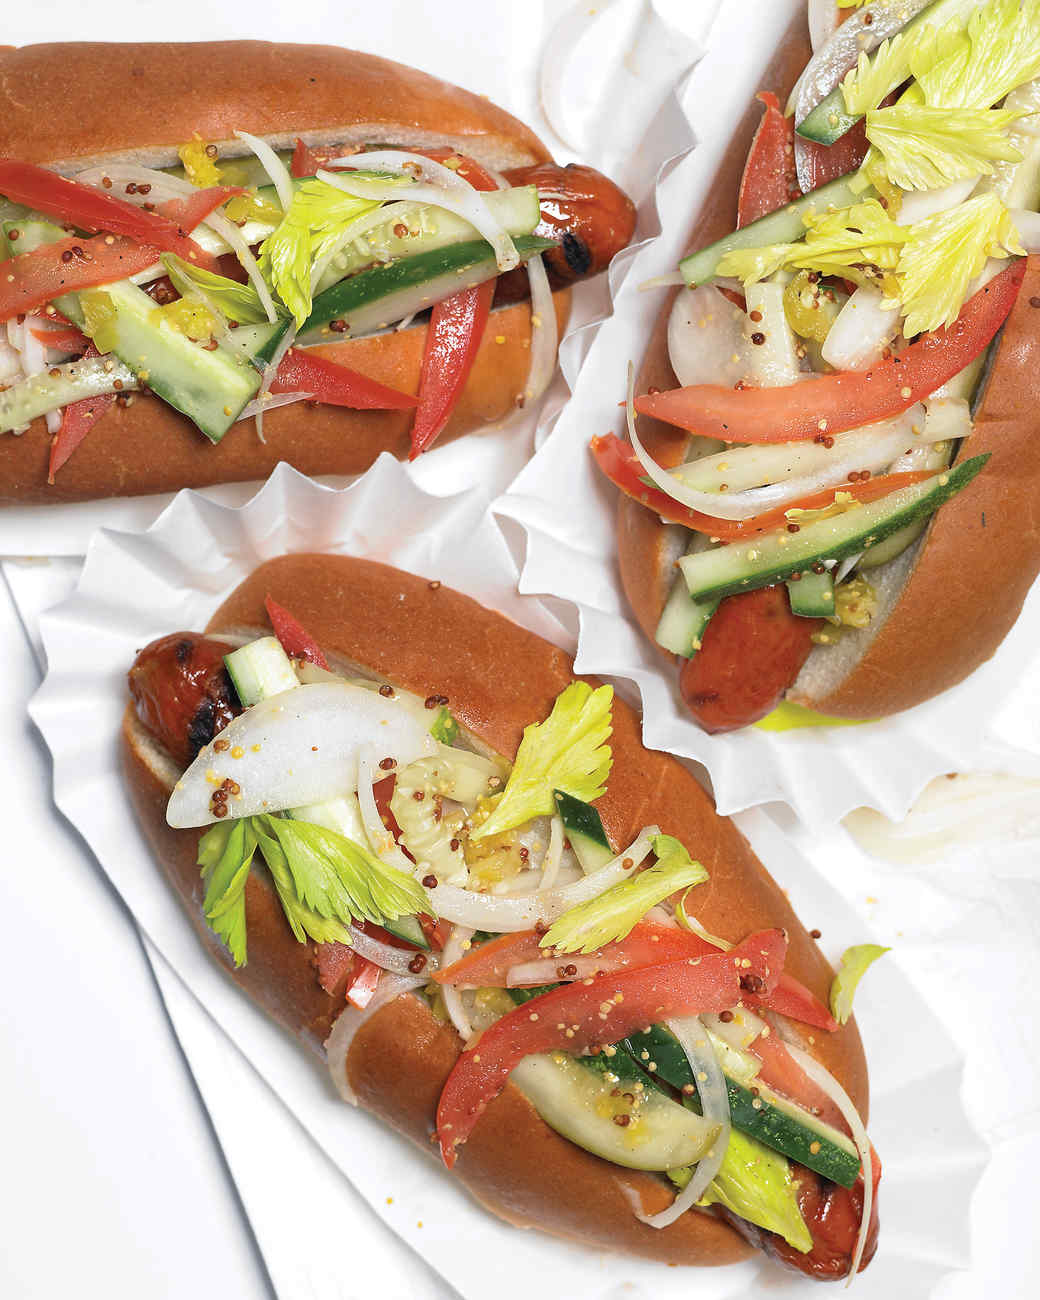 Chicago-Style Hot Dogs